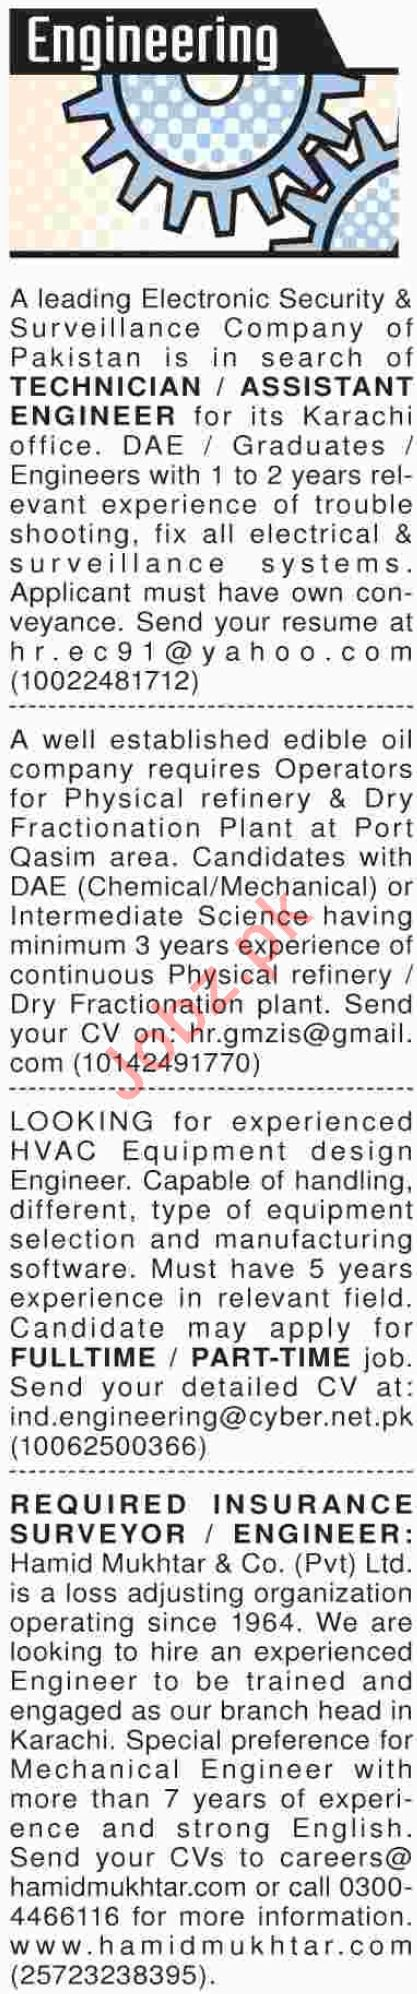 Dawn Sunday Classified Ads for Engineering Staff